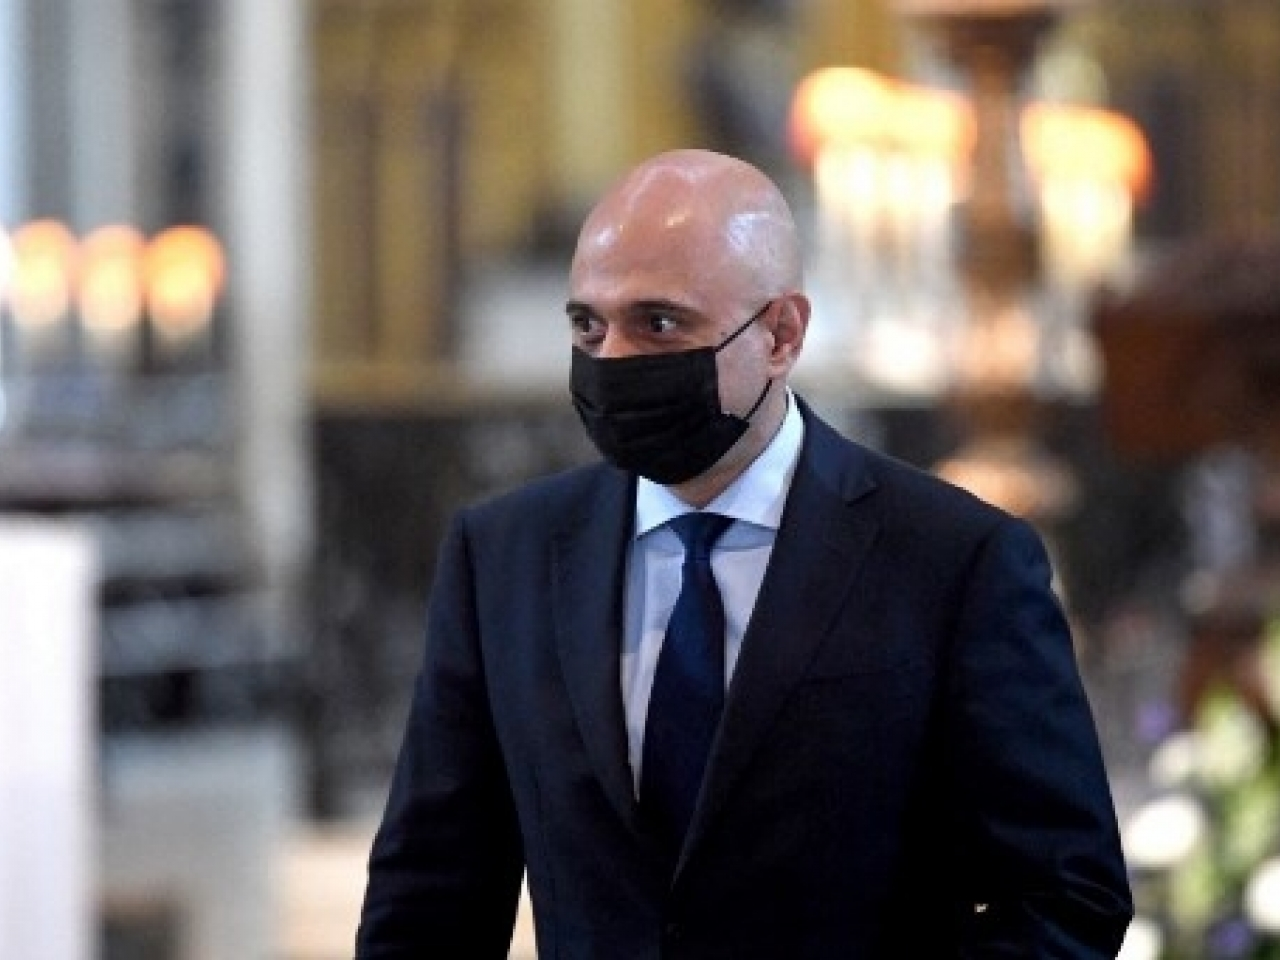 Sajid Javid is now required to self-isolate for 10 days unless the PCR test he's taken comes back negative and he no longer has symptoms. File photo: AFP